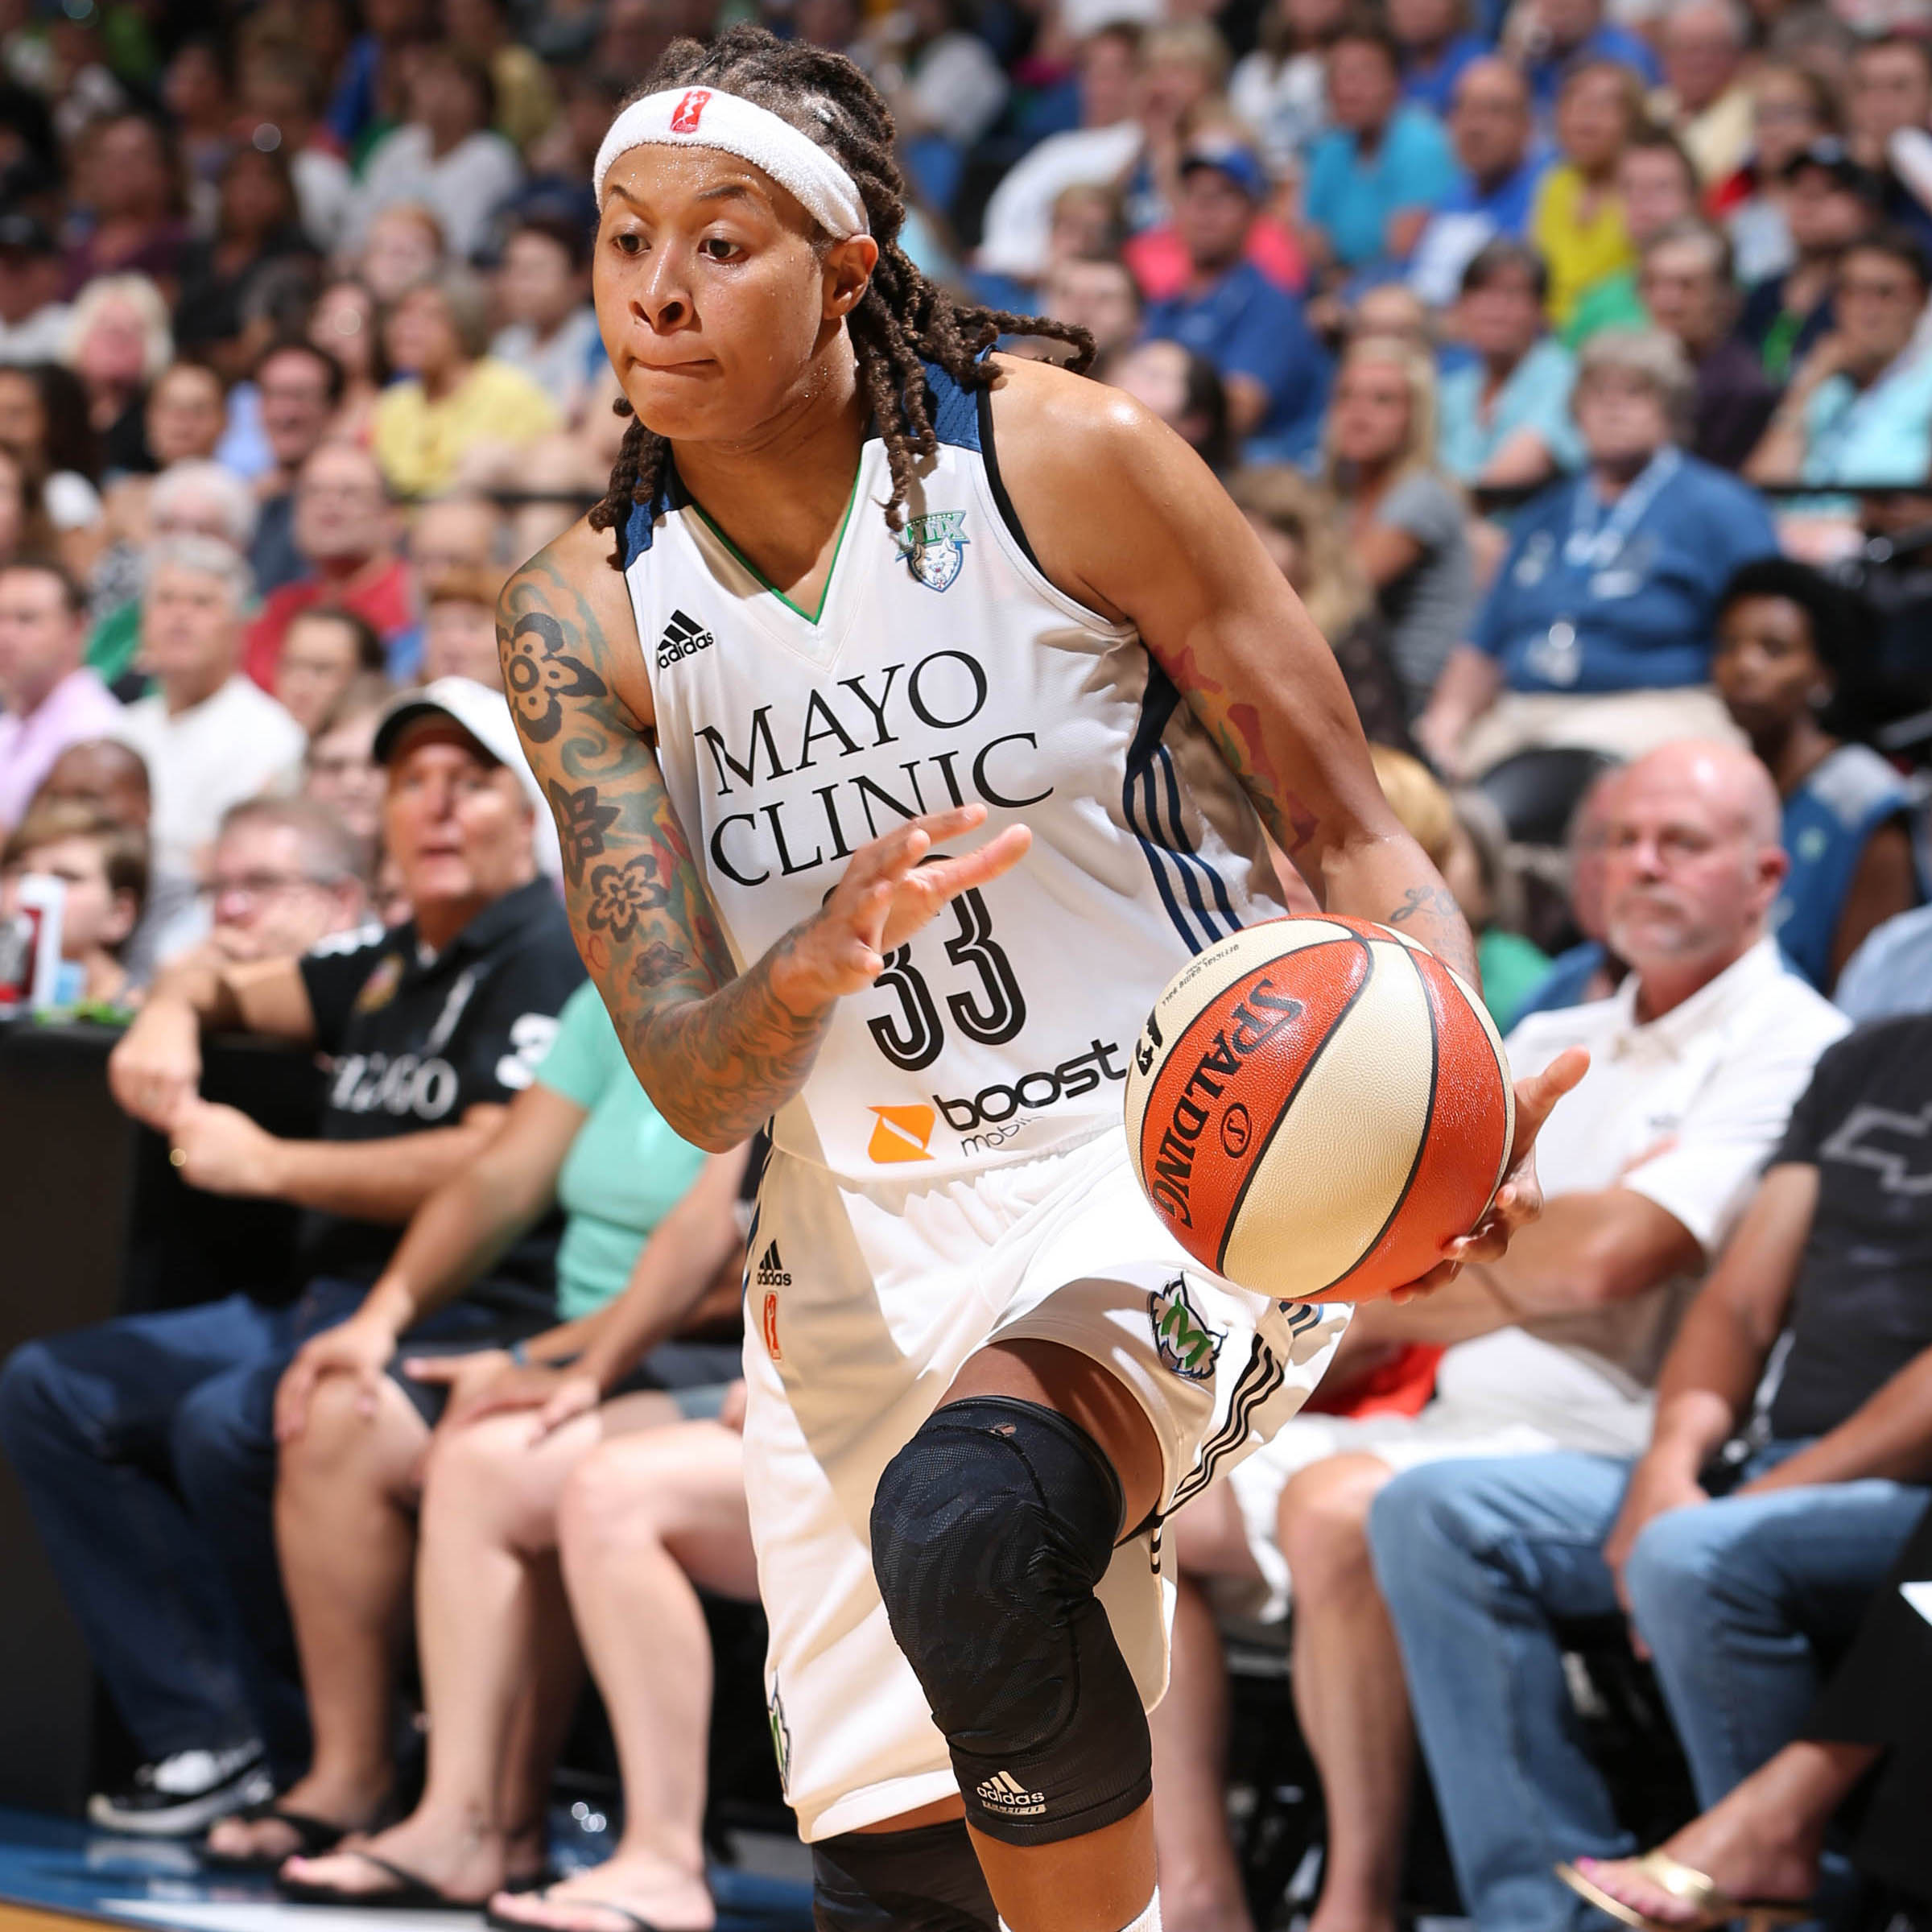 Lynx guard Seimone Augustus had a solid game, scoring 15 points on 7-of-13 shooting.